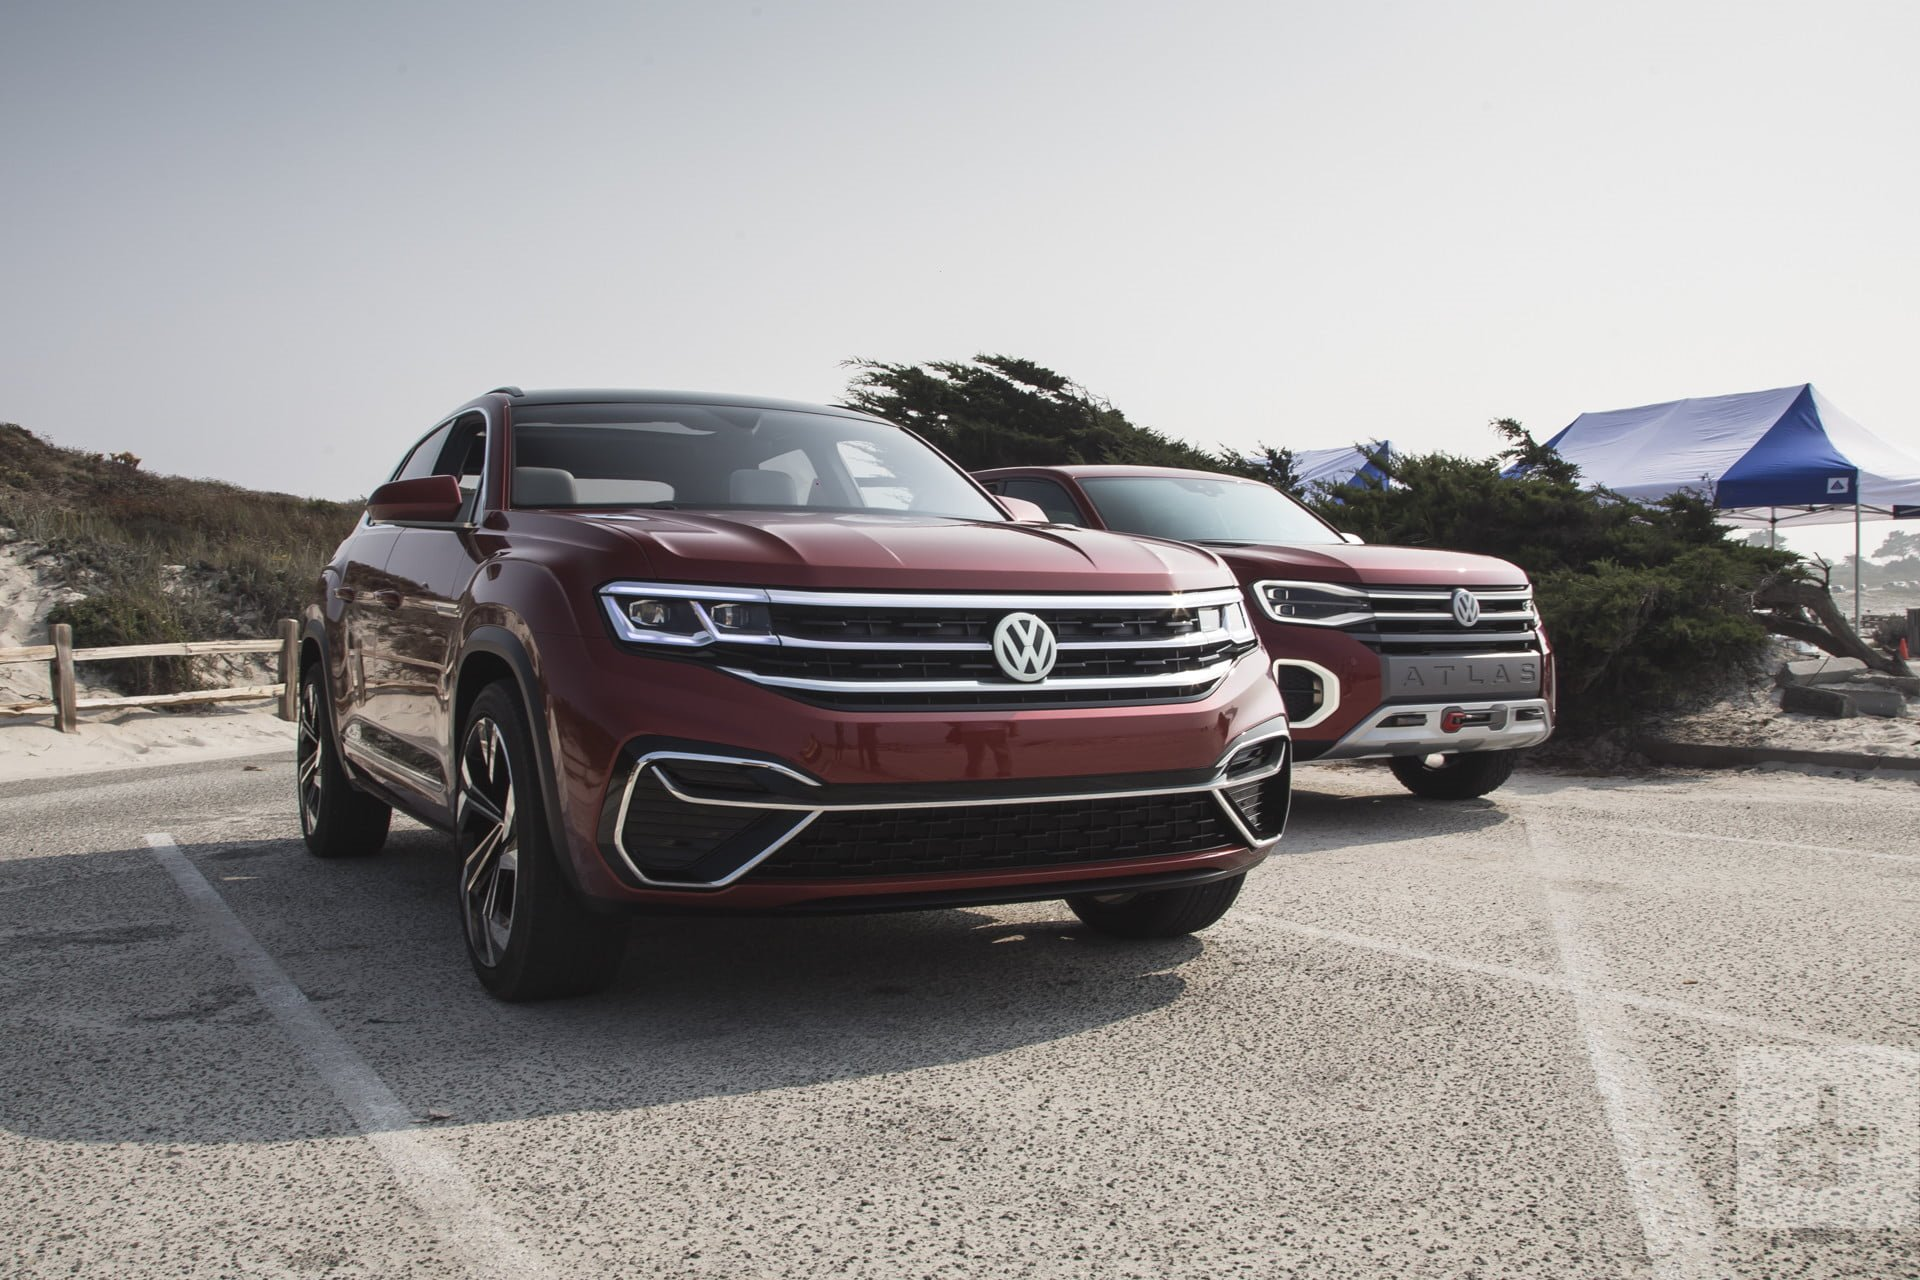 New 2019 Volkswagen-Atlas V6 S 4Motion Atlas V6 S 4Motion for sale $34,095 at M and V Leasing in Brooklyn NY 11223 1